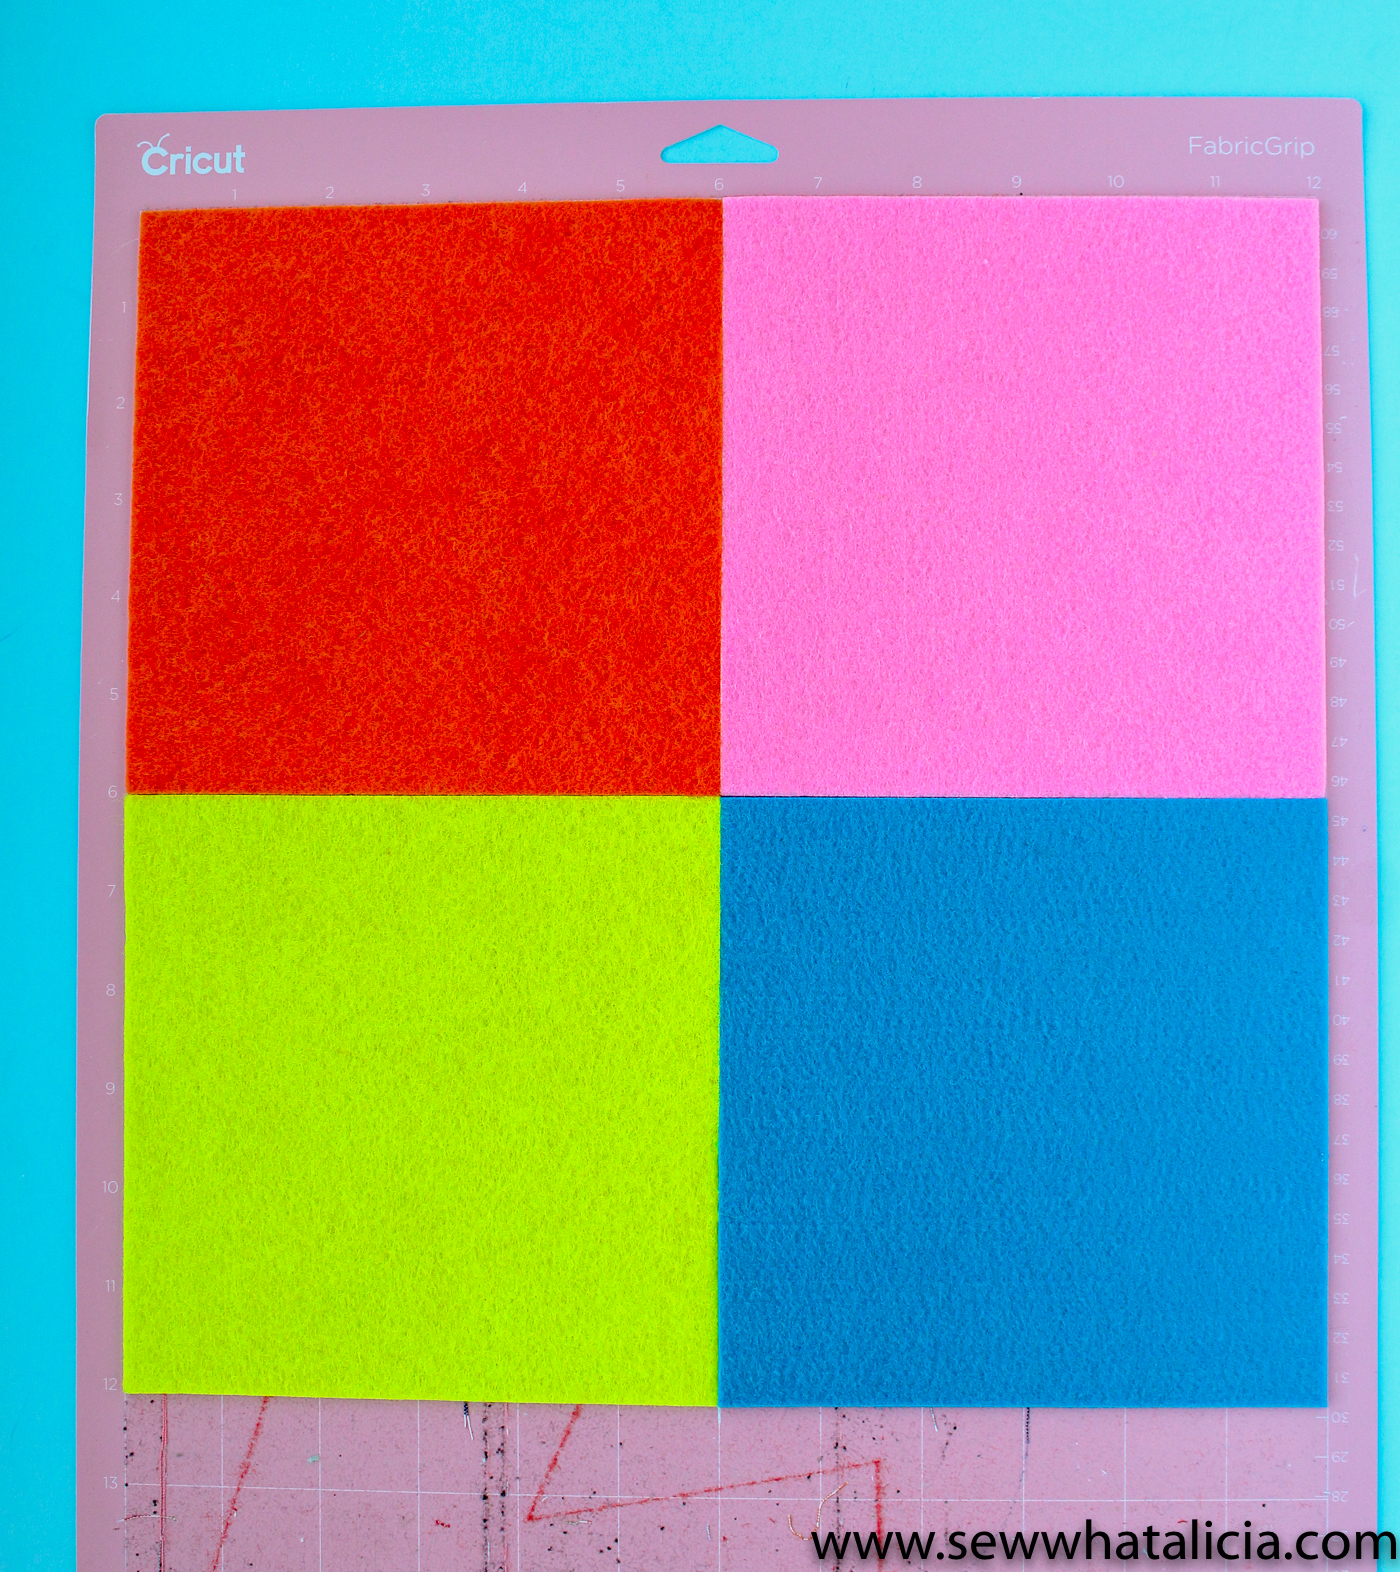 picture about Printable Tangrams Pdf titled Cuttable and Printable Tangrams PDF - Sew What, Alicia?